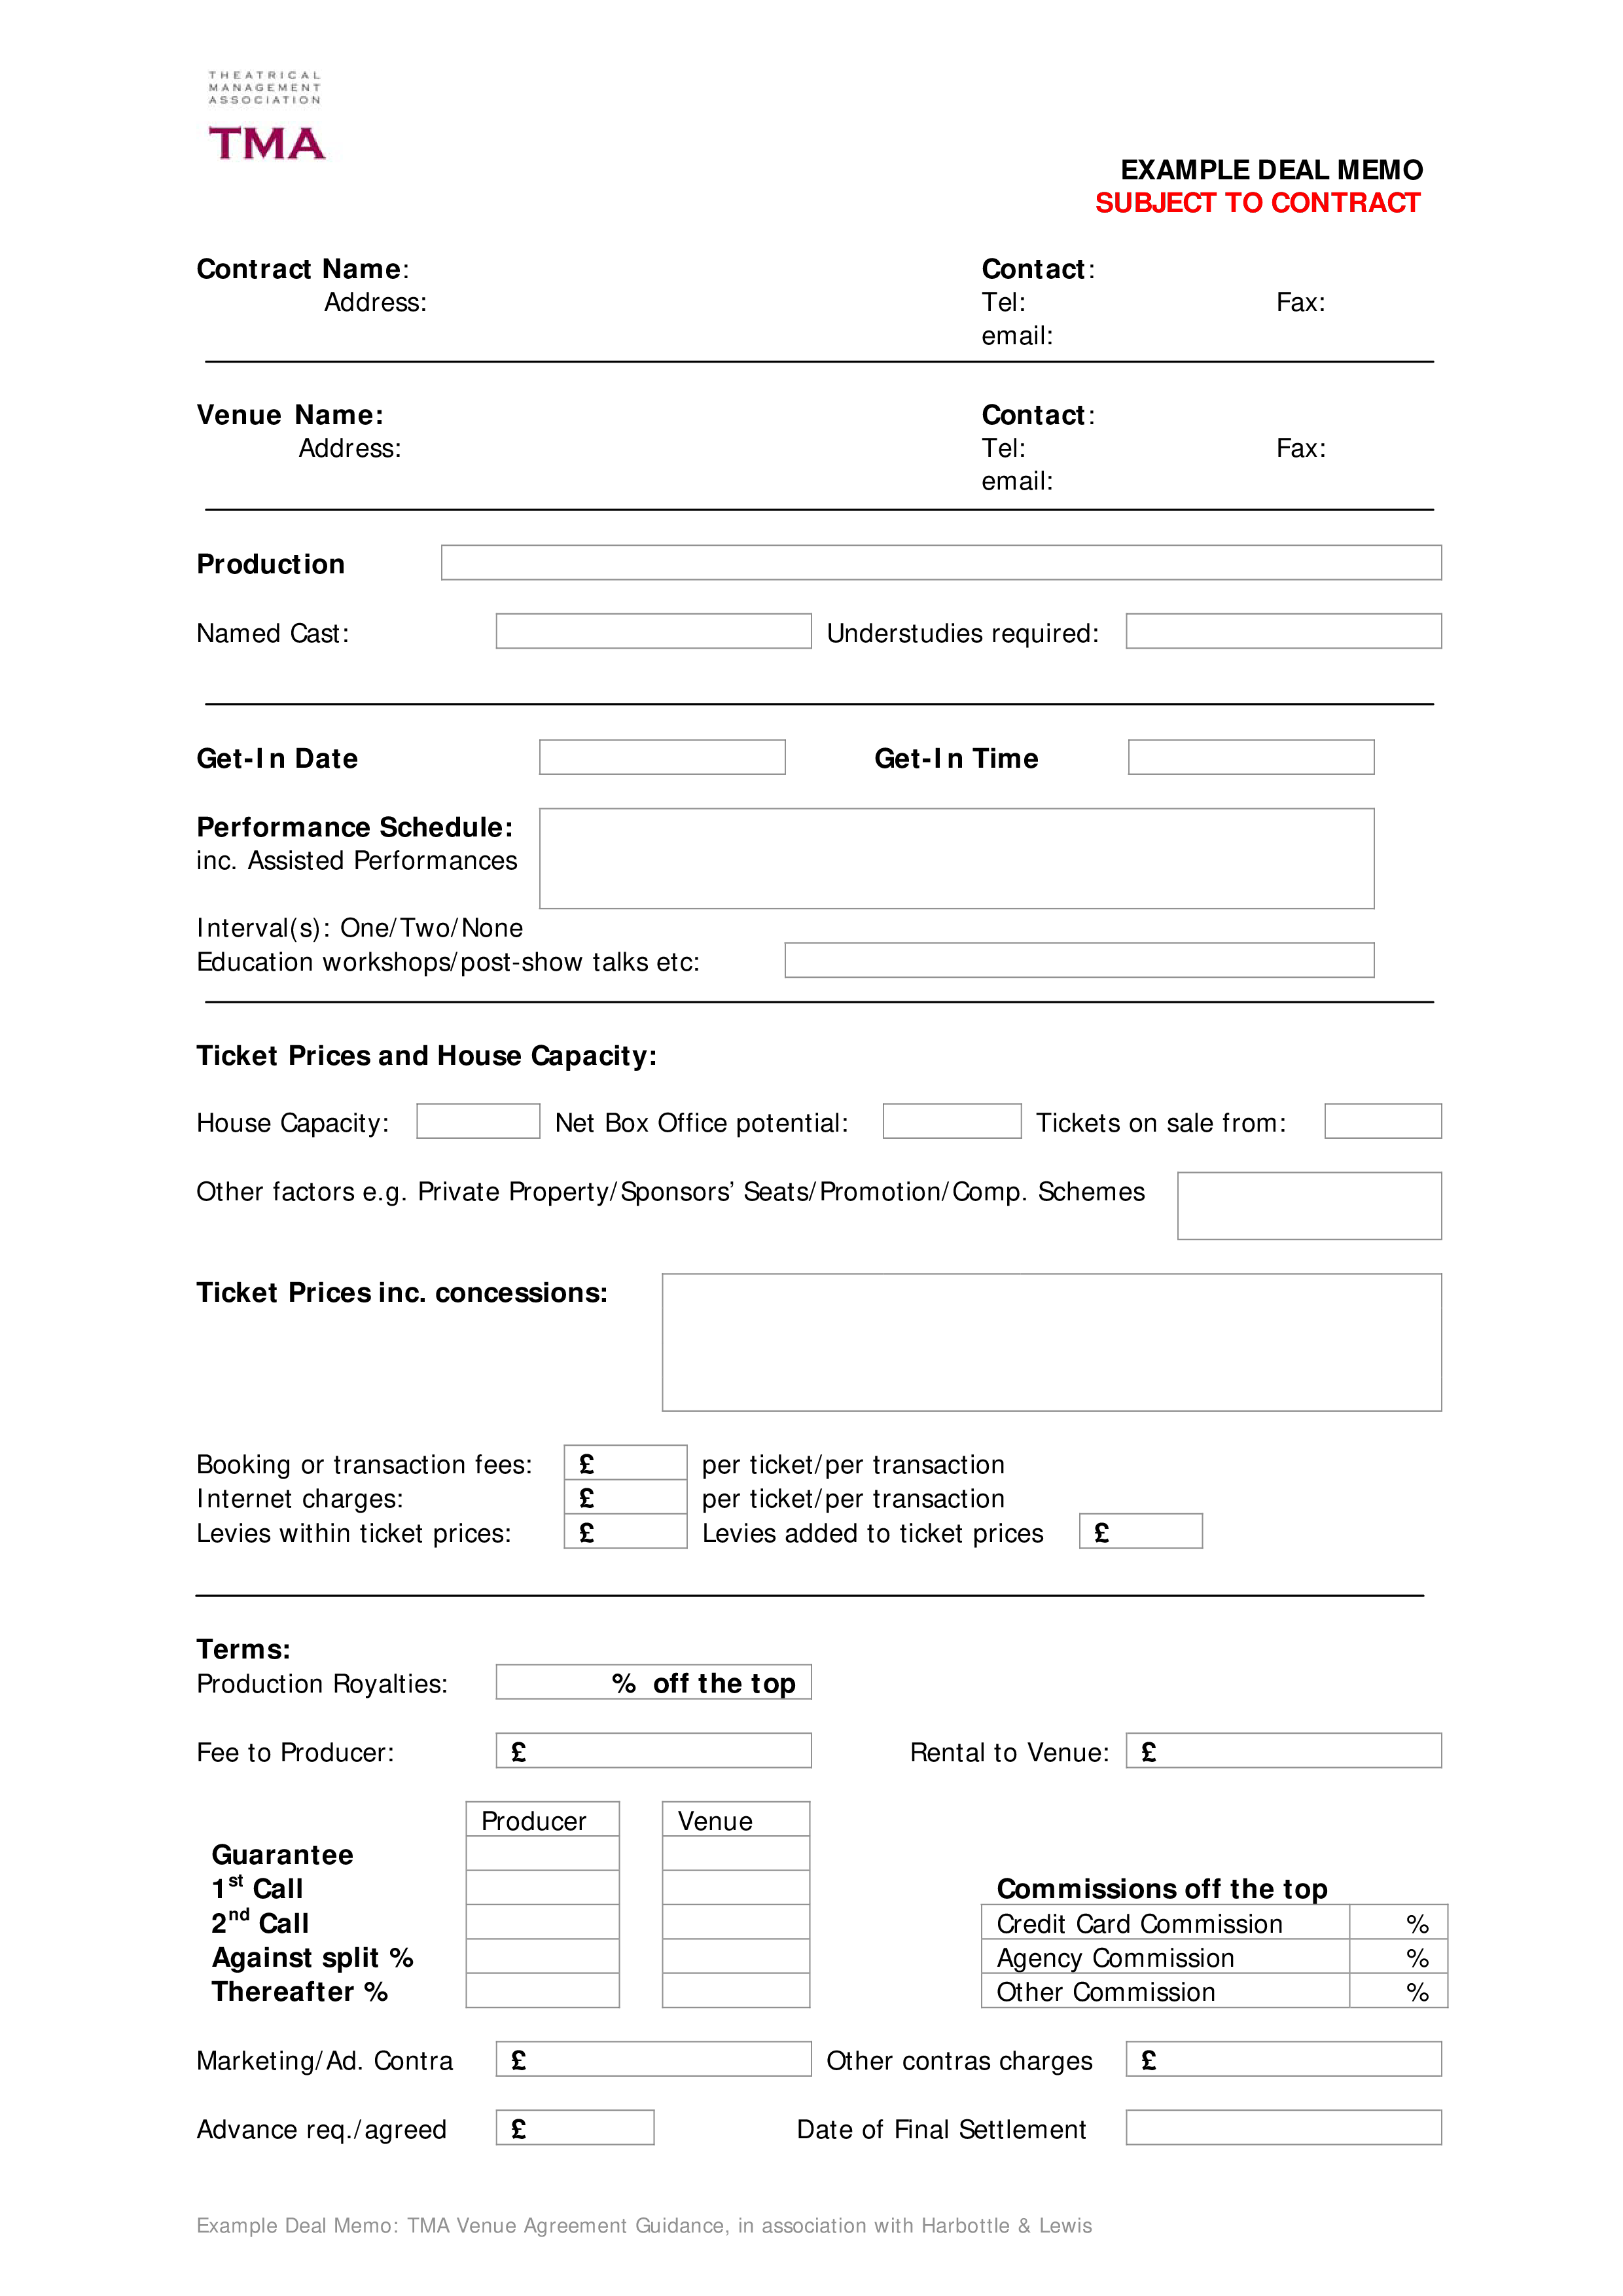 Contract Deal Memo Template  Download This Contract Deal Memo